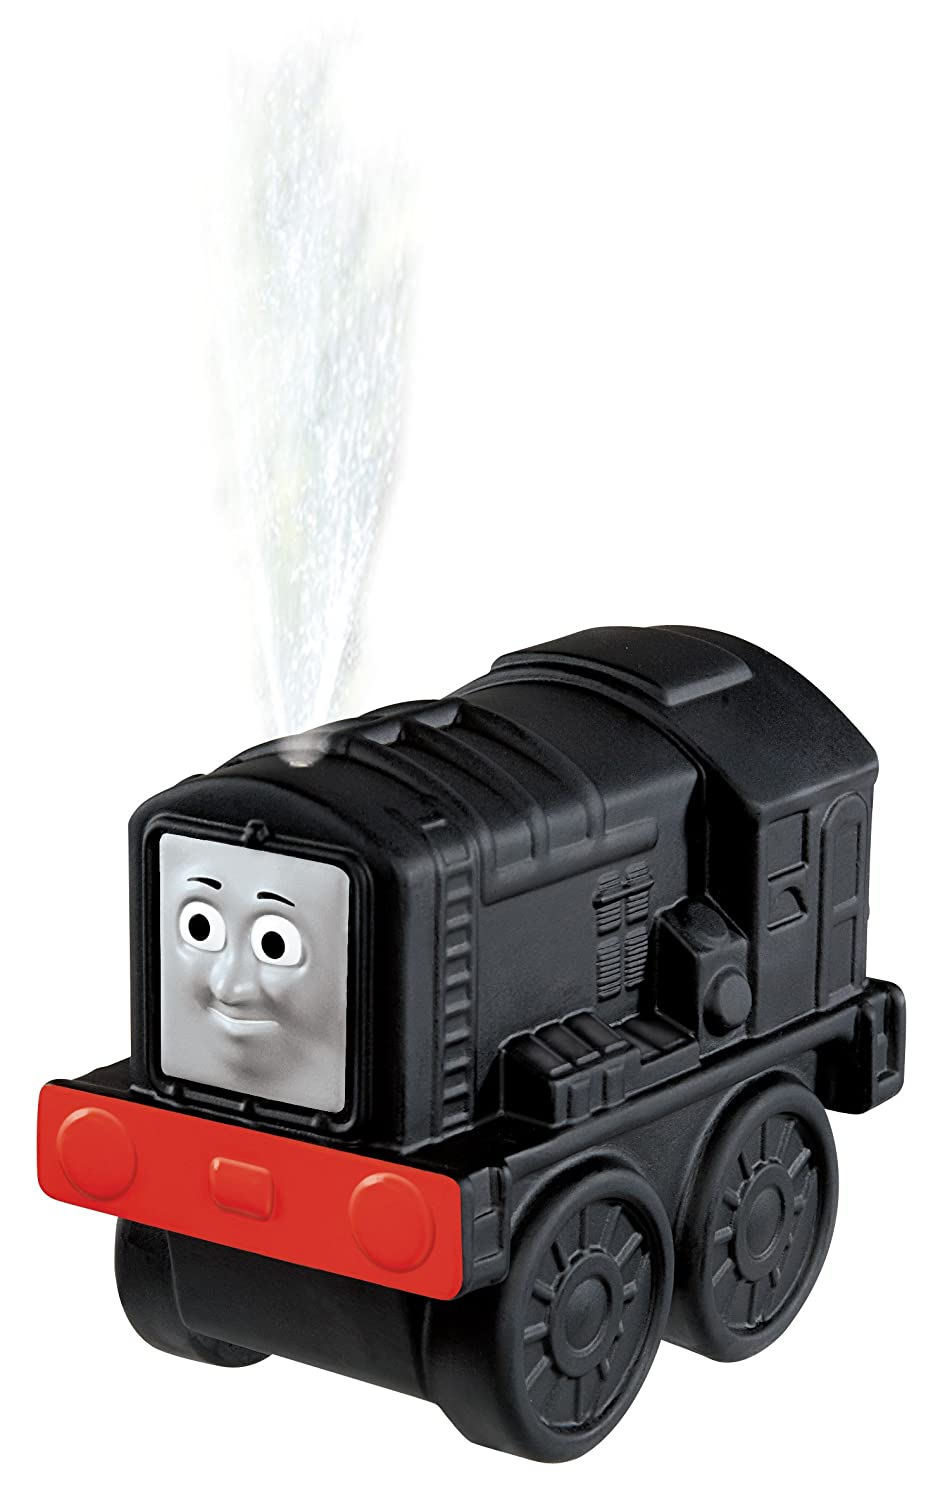 Amazon.com: Fisher-Price My First Thomas The Train Diesel Bath ...